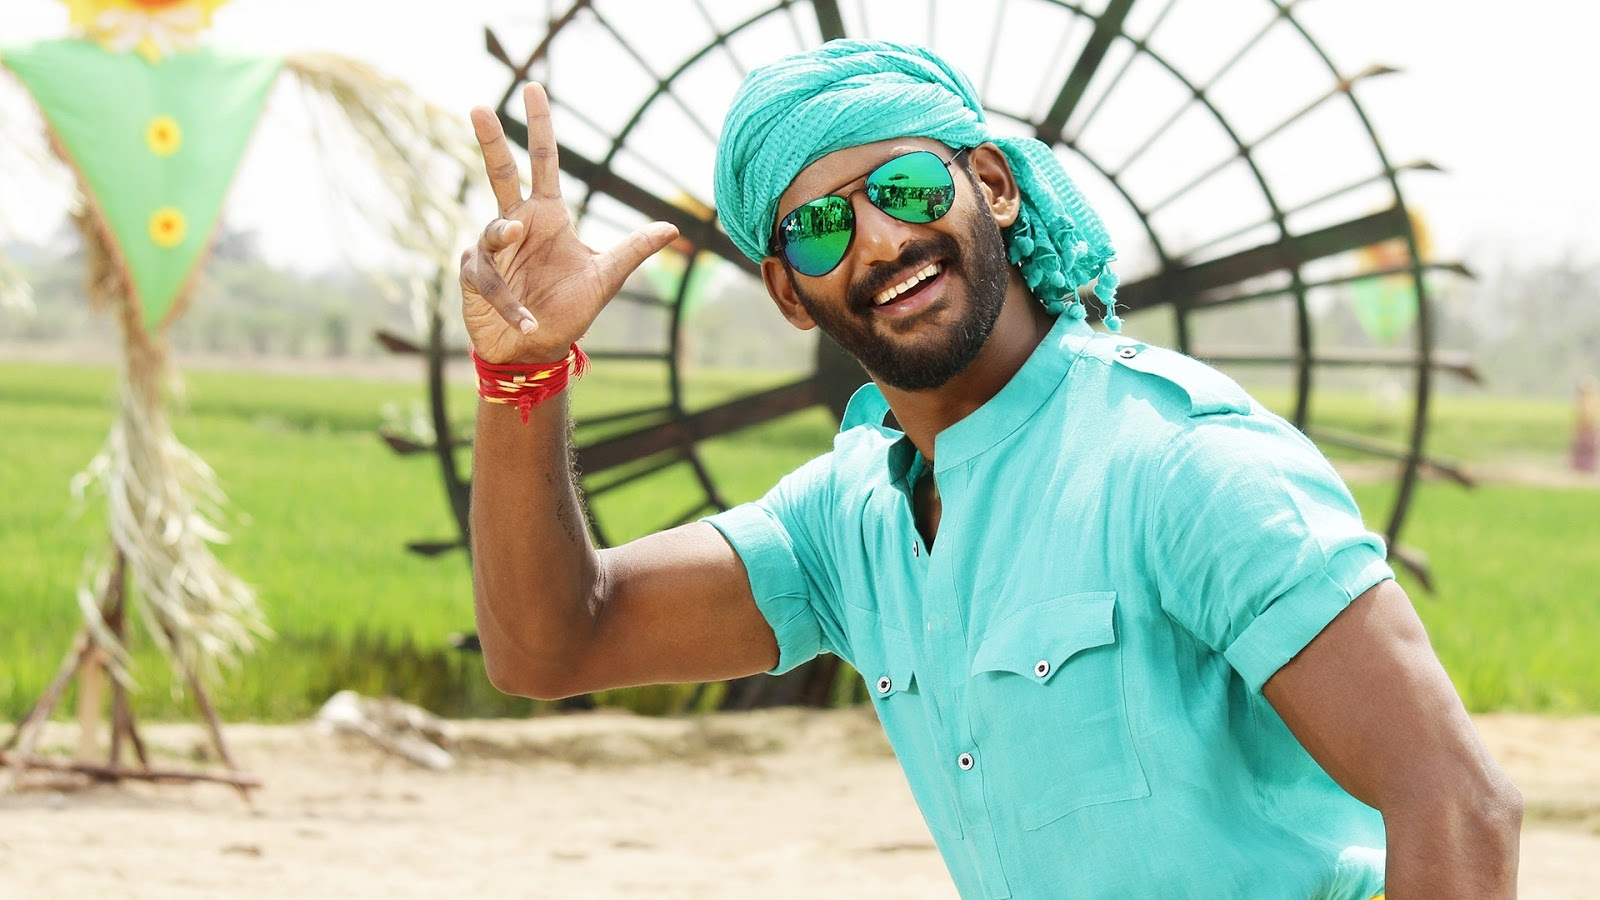 Rayudu movie hero vishal krishna photos